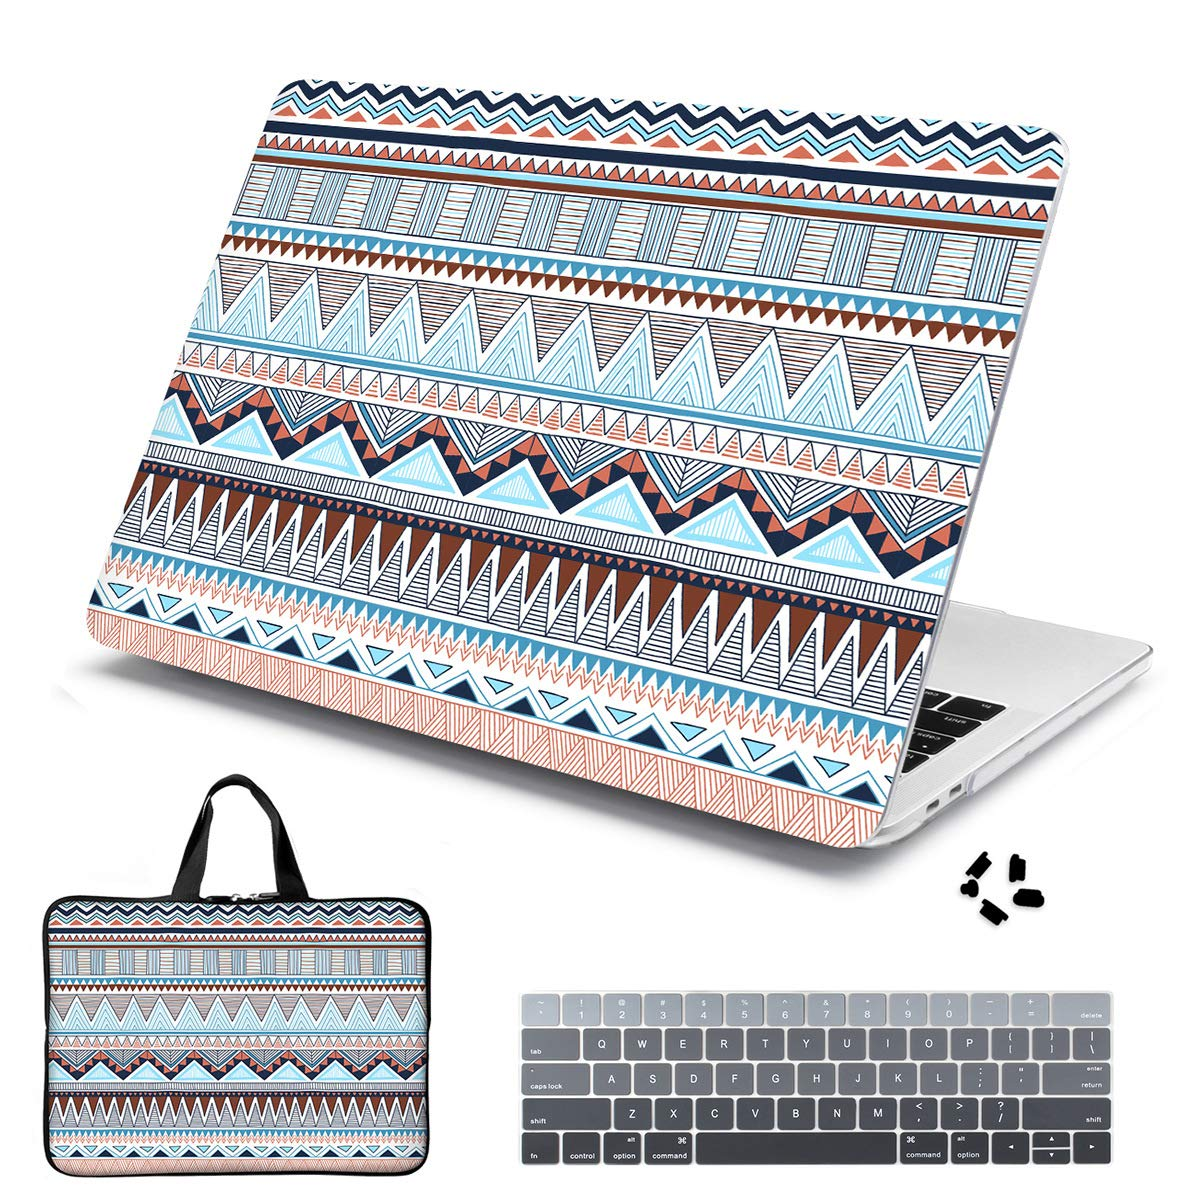 Batianda Laptop Sleeve with Handle Case for New MacBook Pro 13'' (2019/2018/2017/2016, with/no Touch Bar,Model A1706/A1708/A1989/A2159) Keyboard Cover (4 in 1 Bundle) Hard Shell (European Style) by Batianda